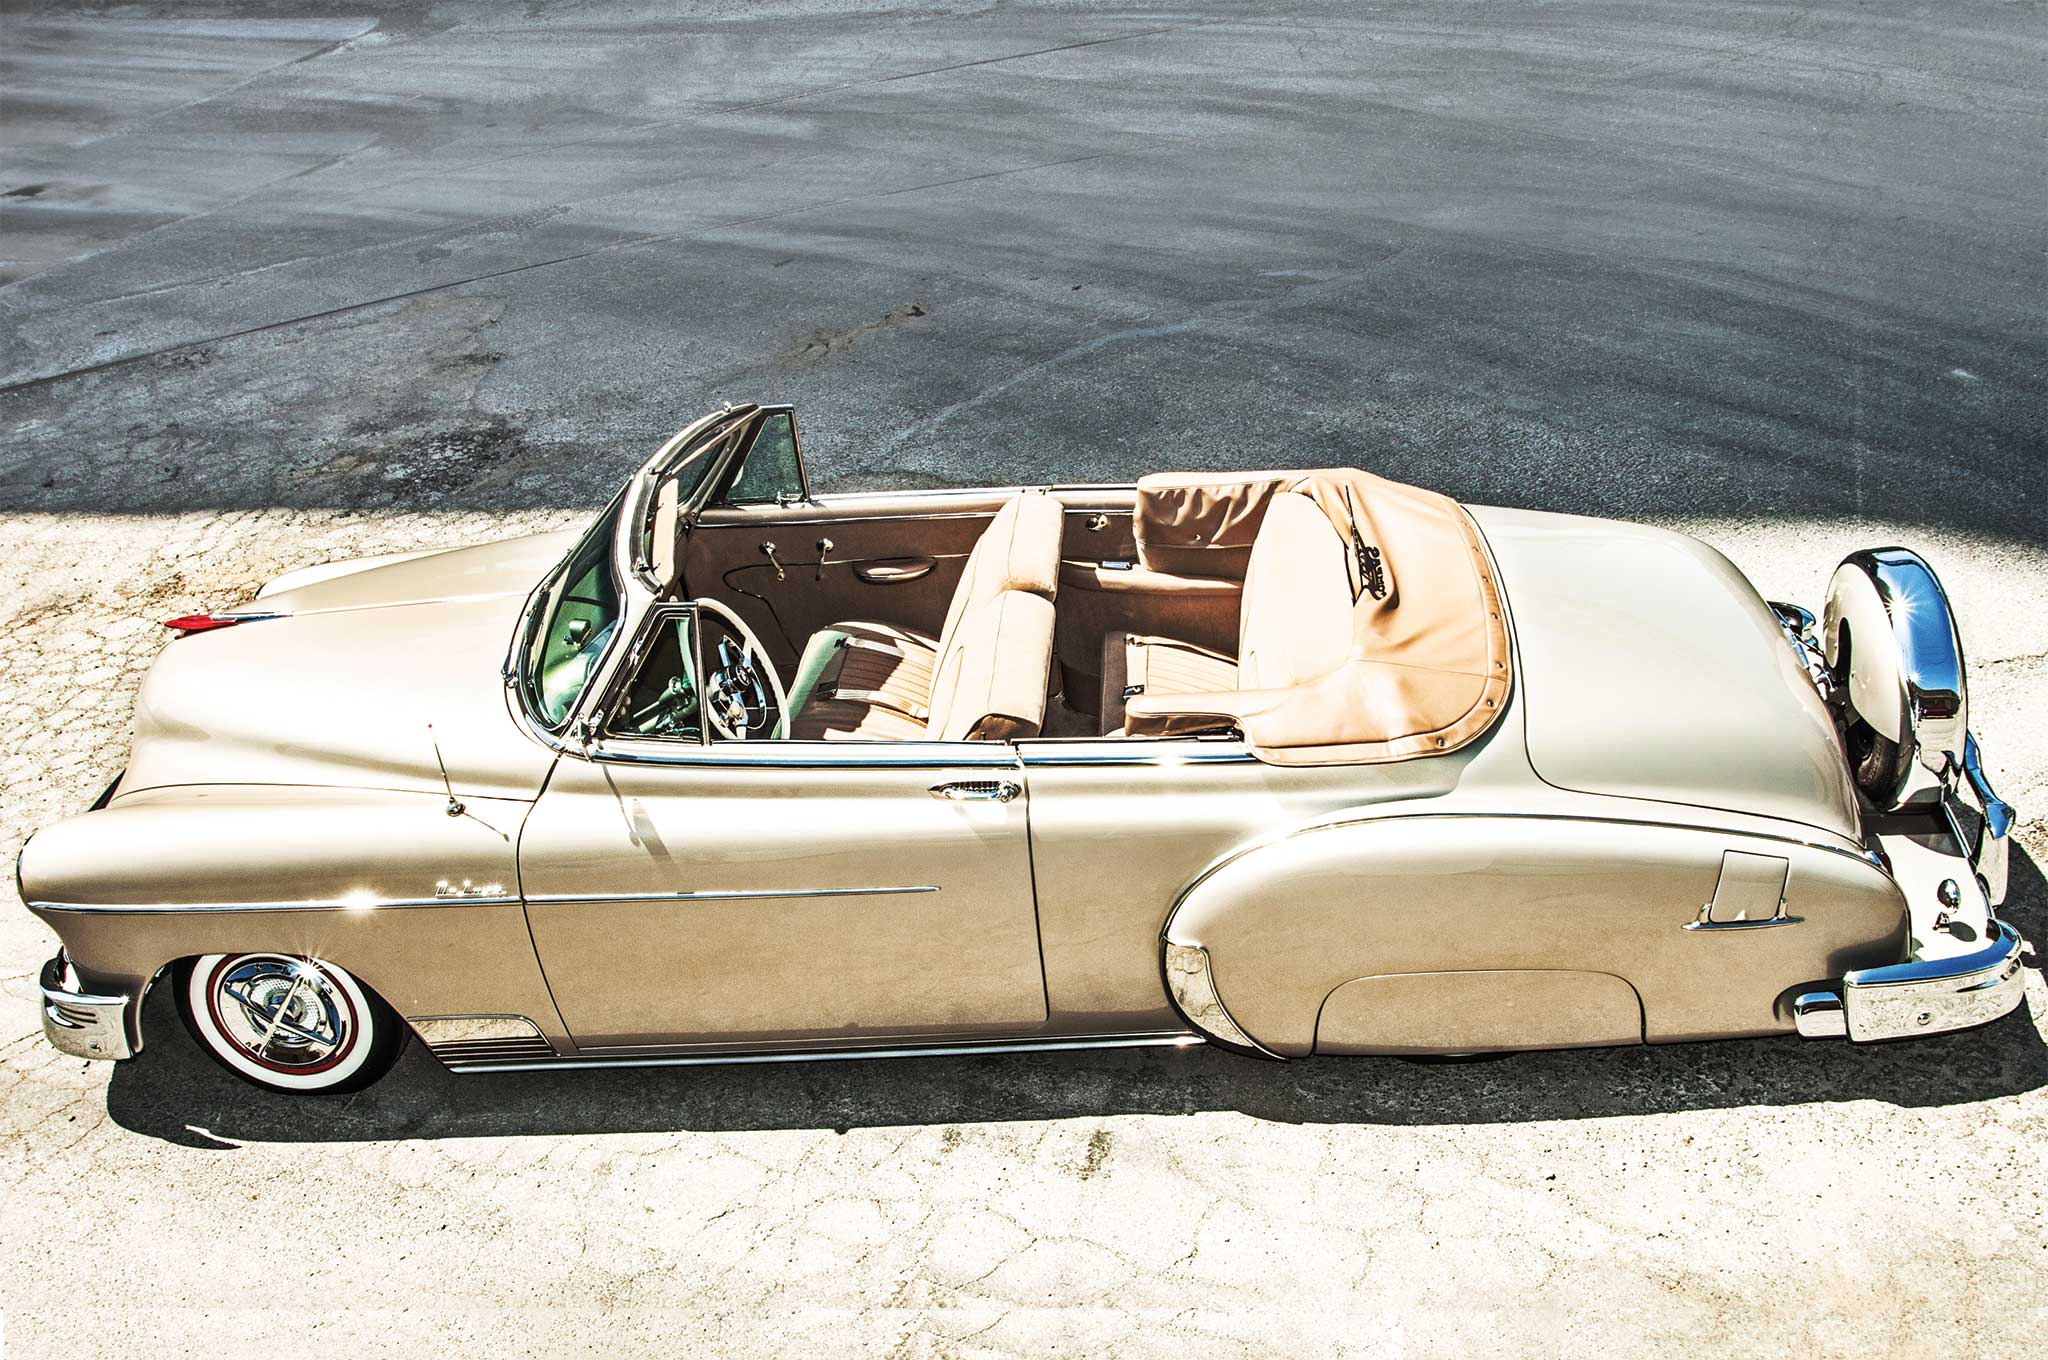 The '49 Chevy DeLuxe package featured the must-have rear fender skirts.